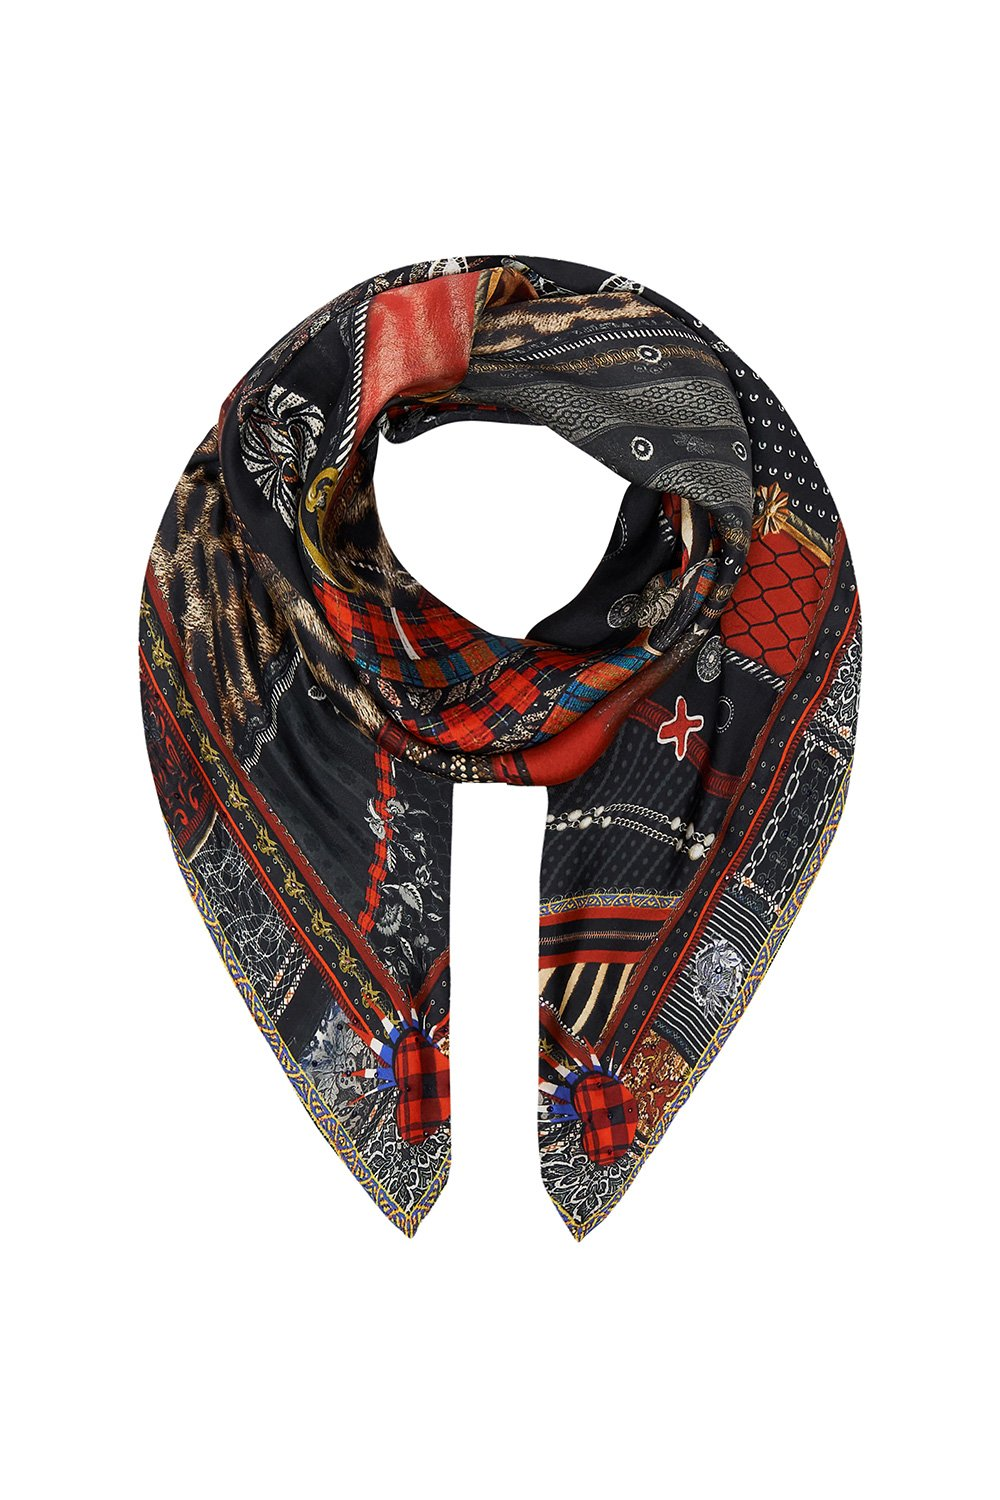 LARGE SQUARE SCARF LONDON CALLING